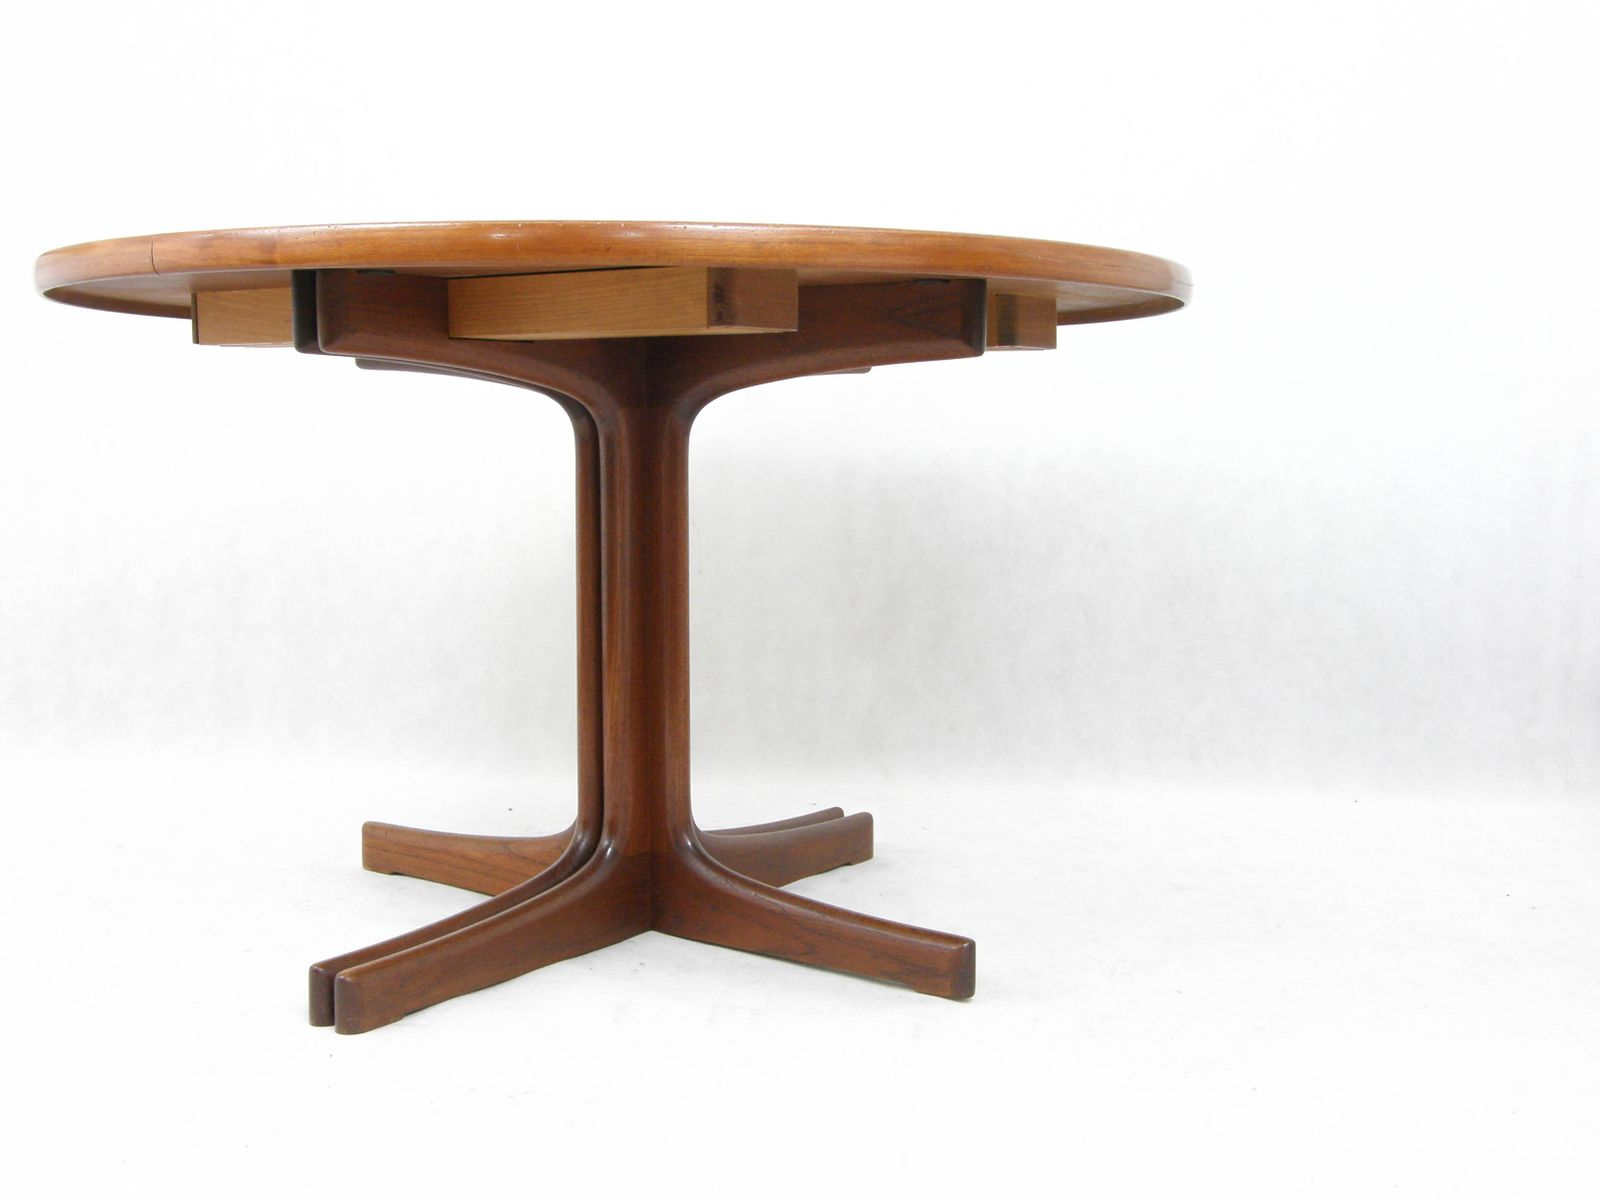 Danish Extendable Round Table in Teak 1960s for sale at Pamono